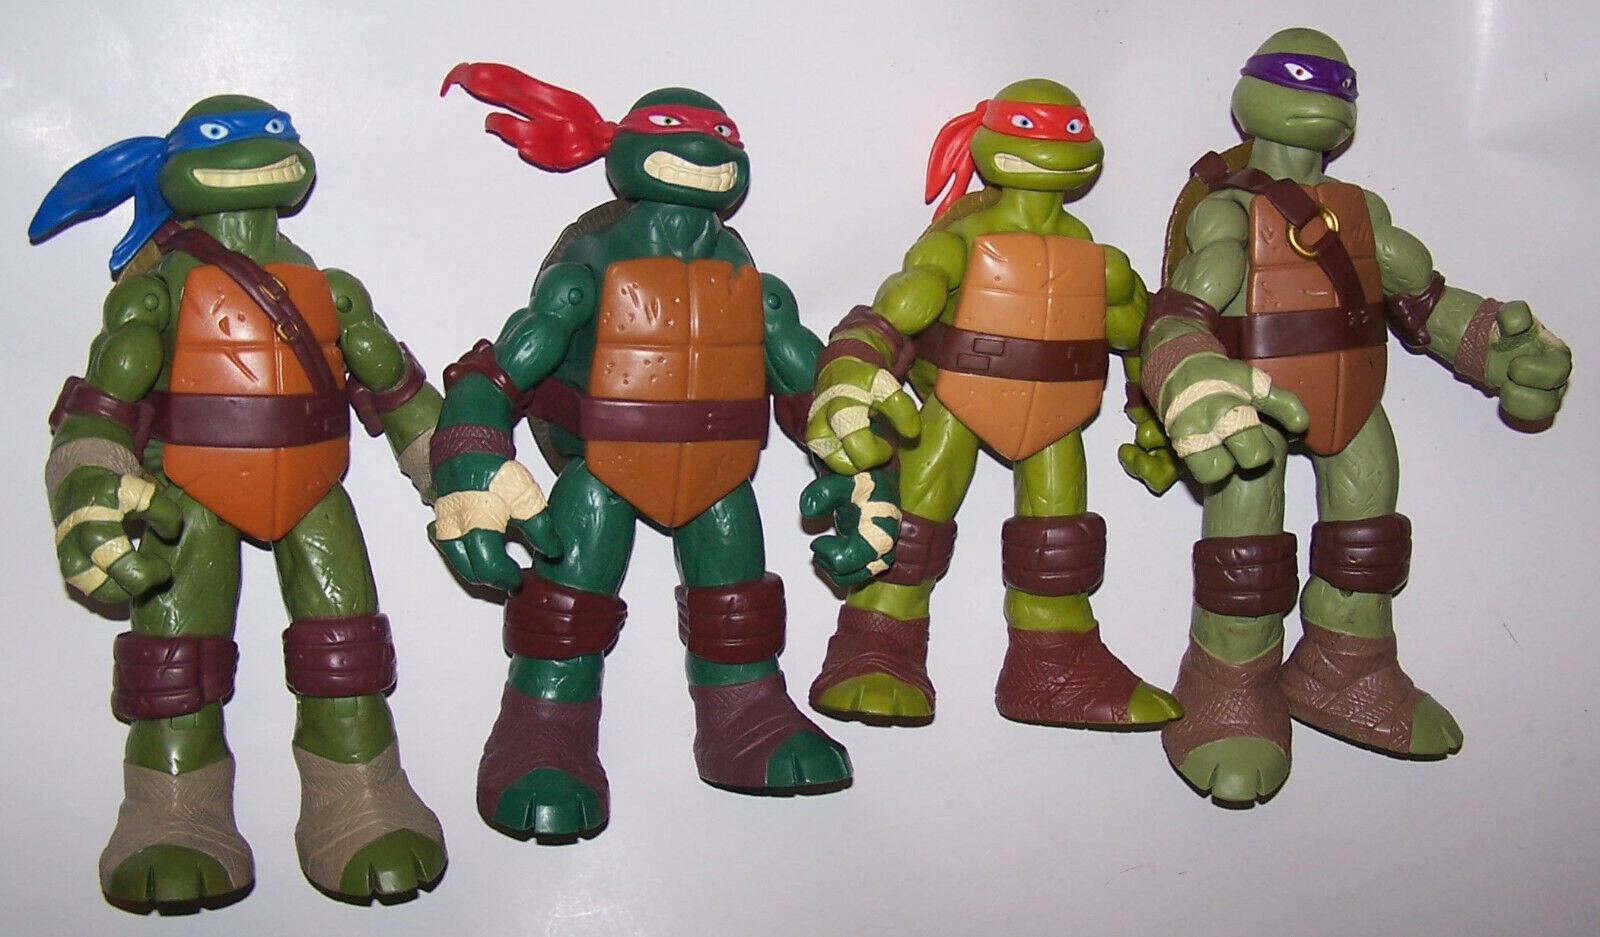 4 2012 TEENAGE MUTANT NINJA TURTLES Battle Shell Action Figures 11  Tall